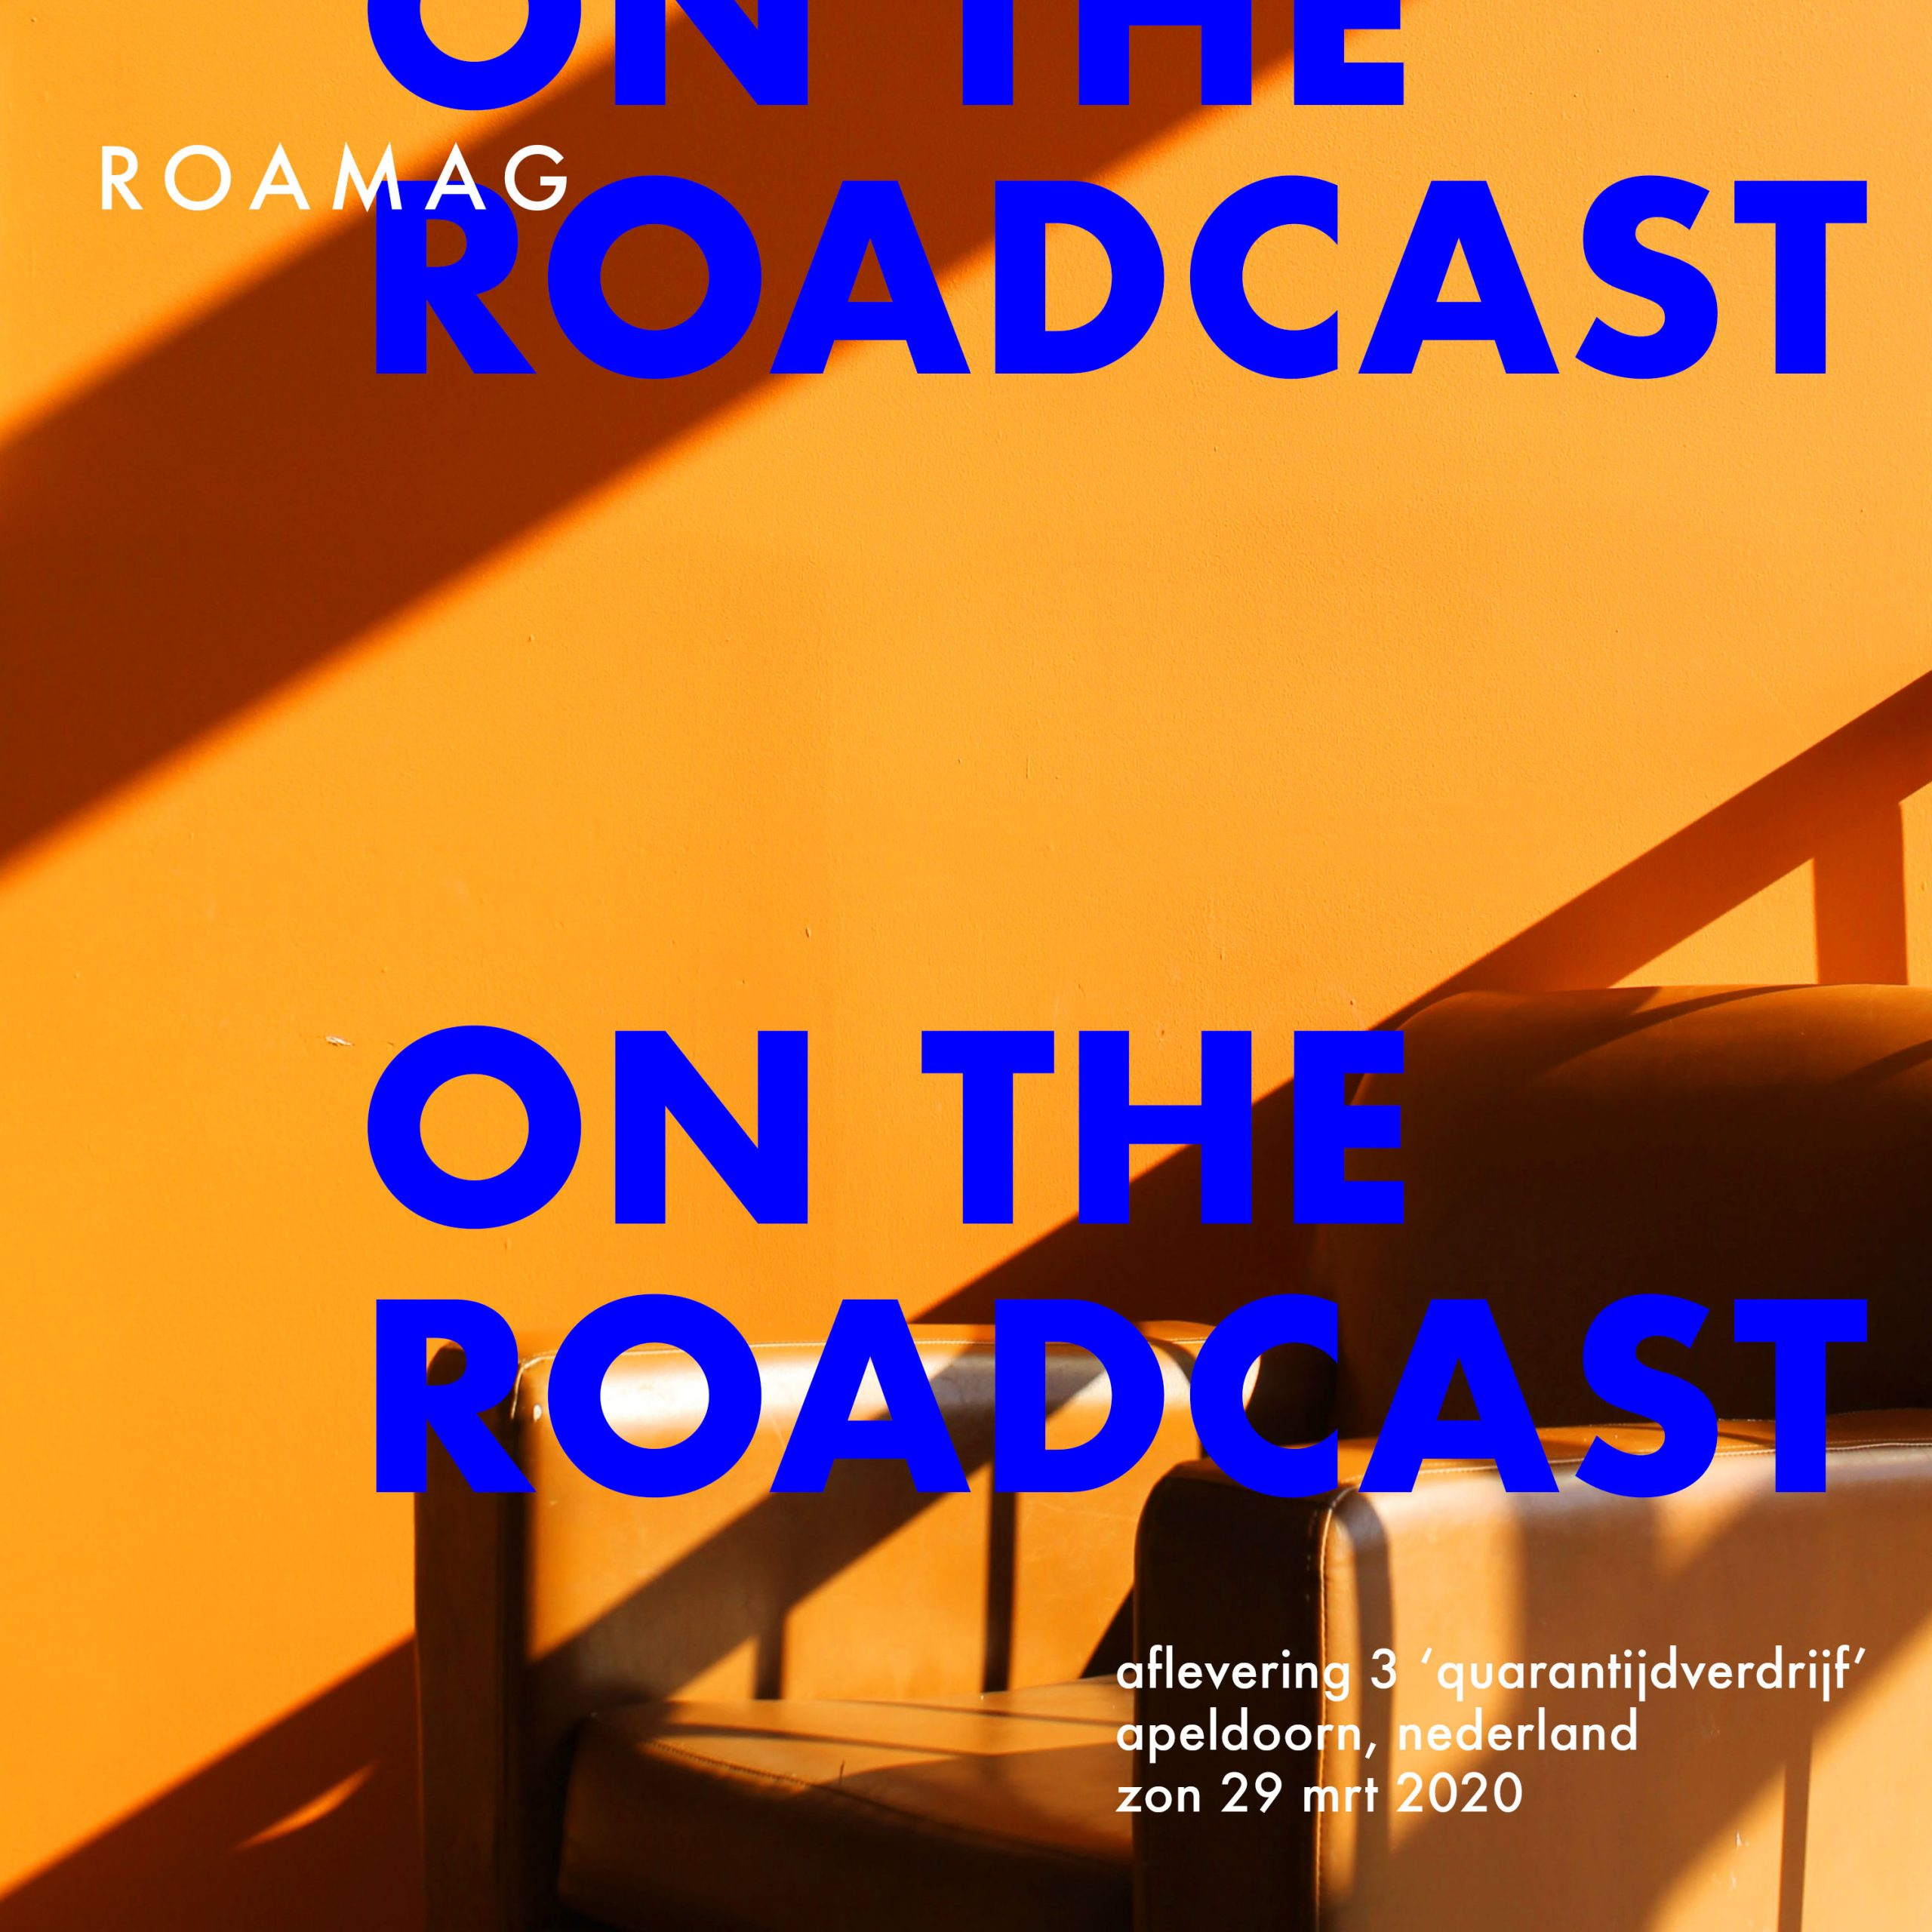 On The Roadcast - Afl. 3